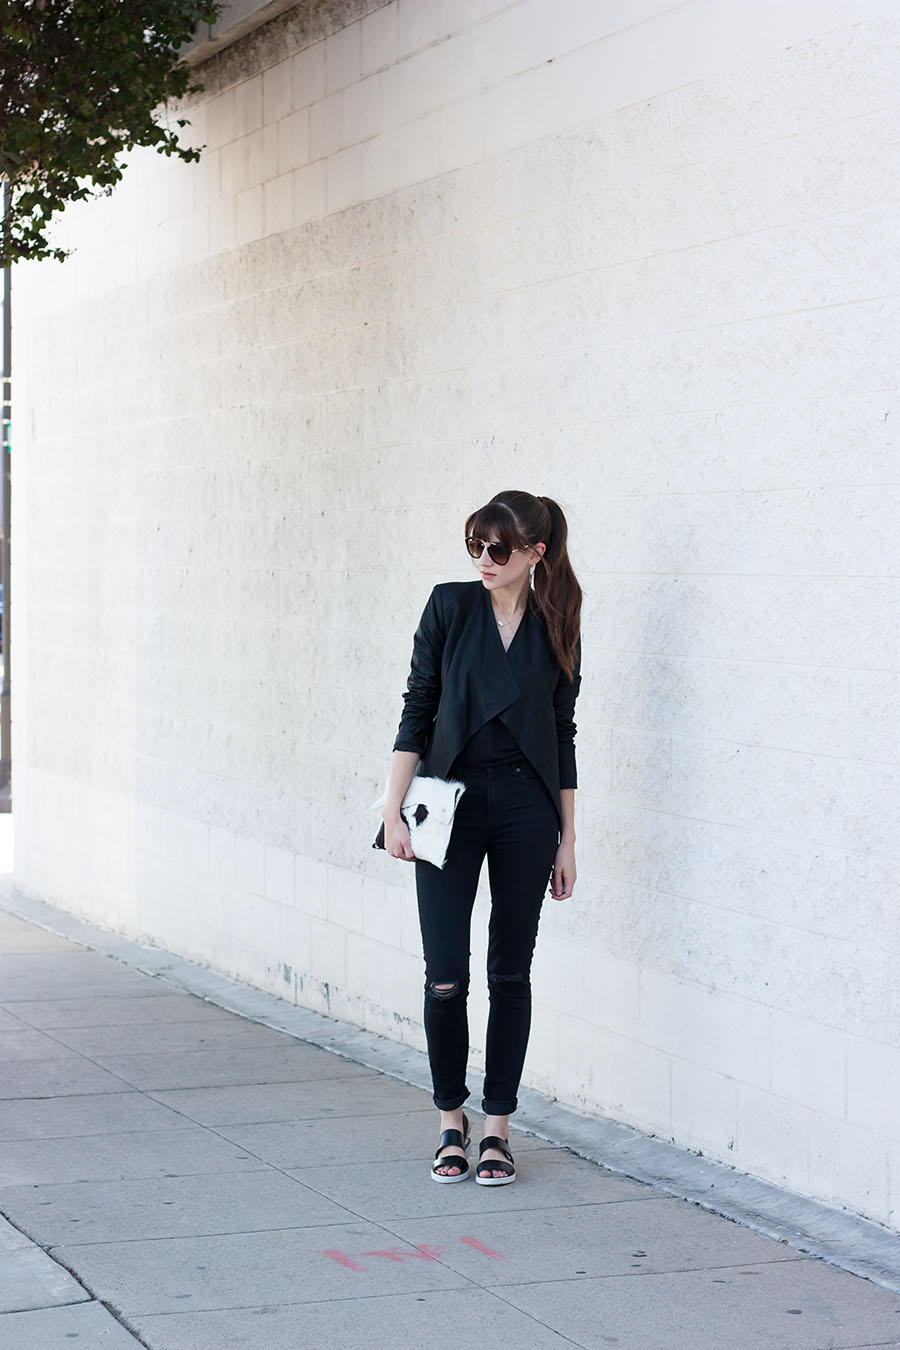 How to Style All Black Outfit, Everlane, Black and White Outfit